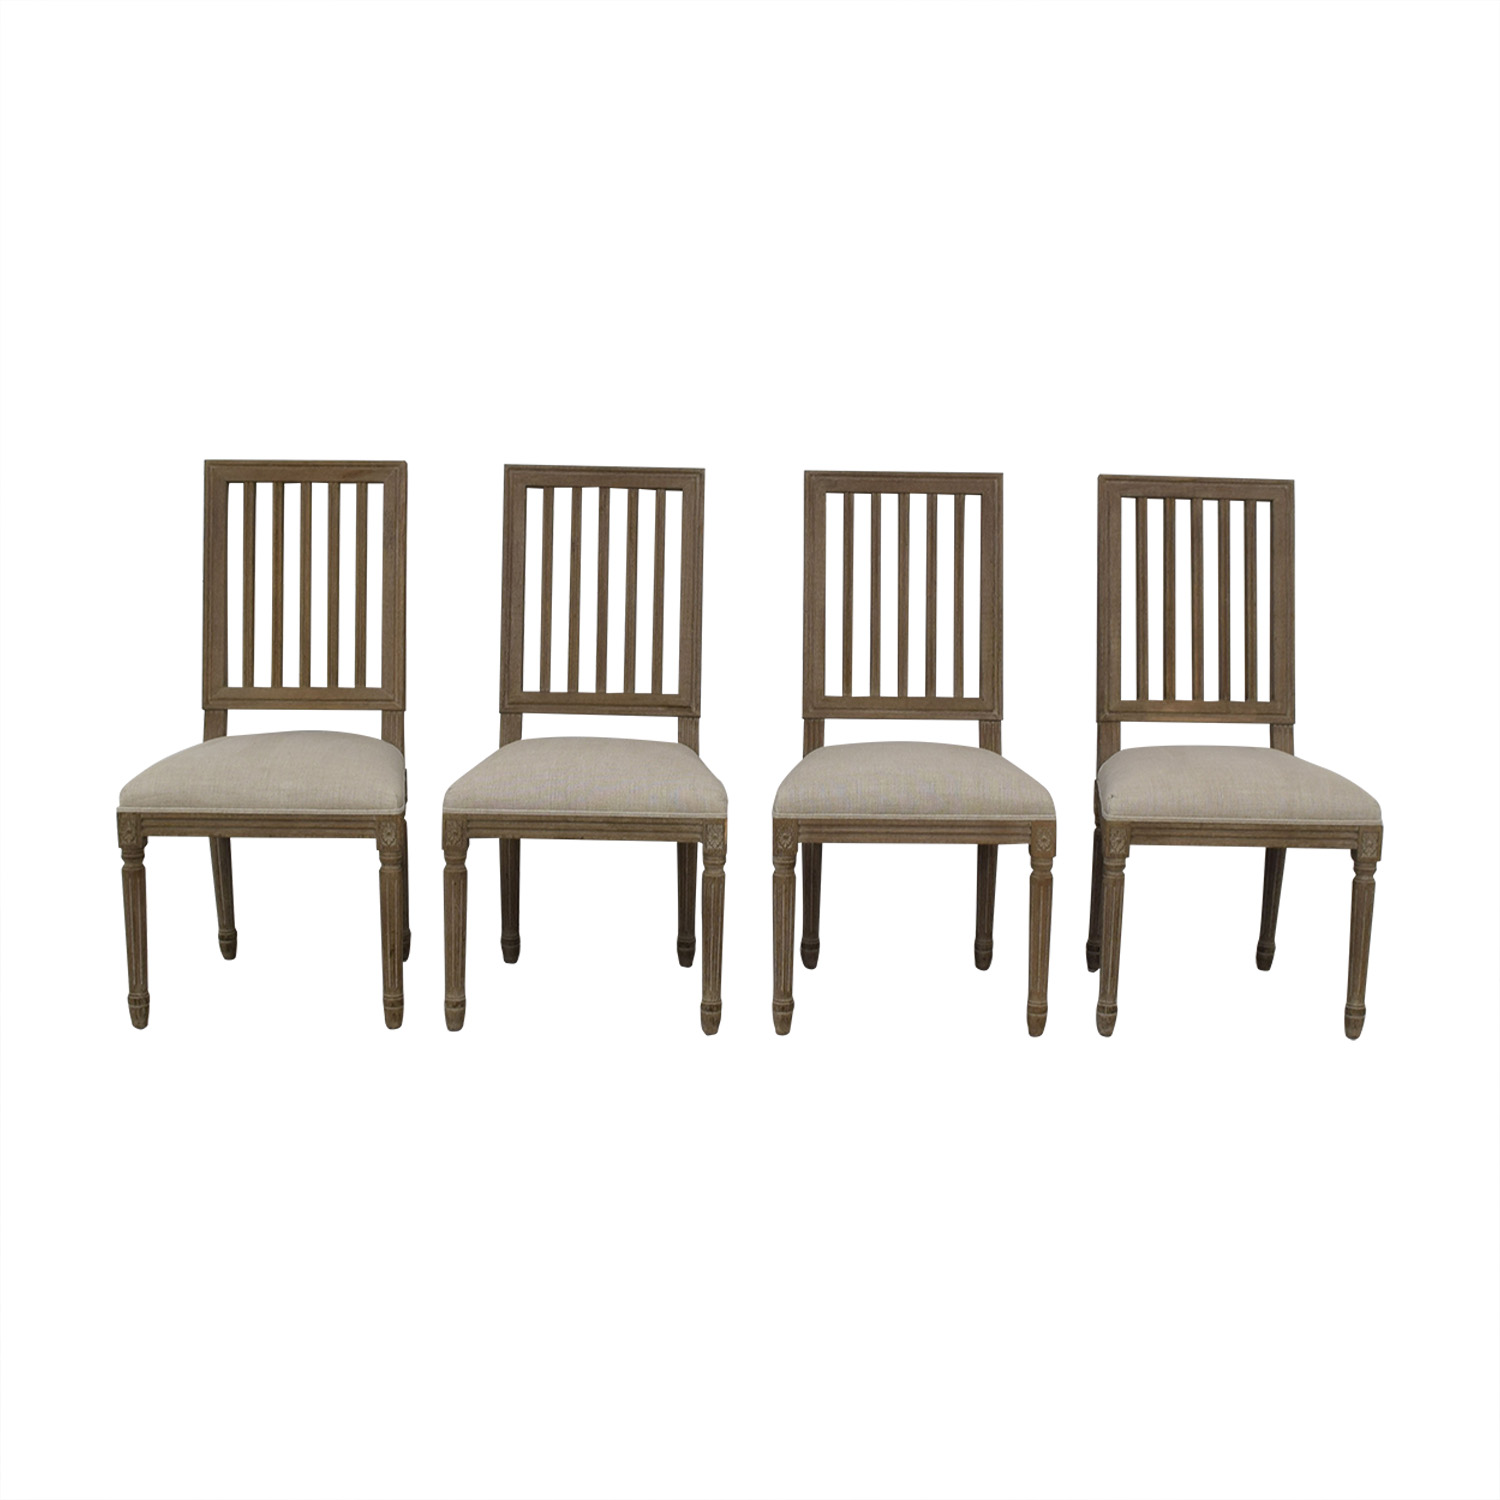 Restoration Hardware Dining Chairs 67 Off Restoration Hardware Restoration Hardware Spindle Back Dining Chairs Chairs